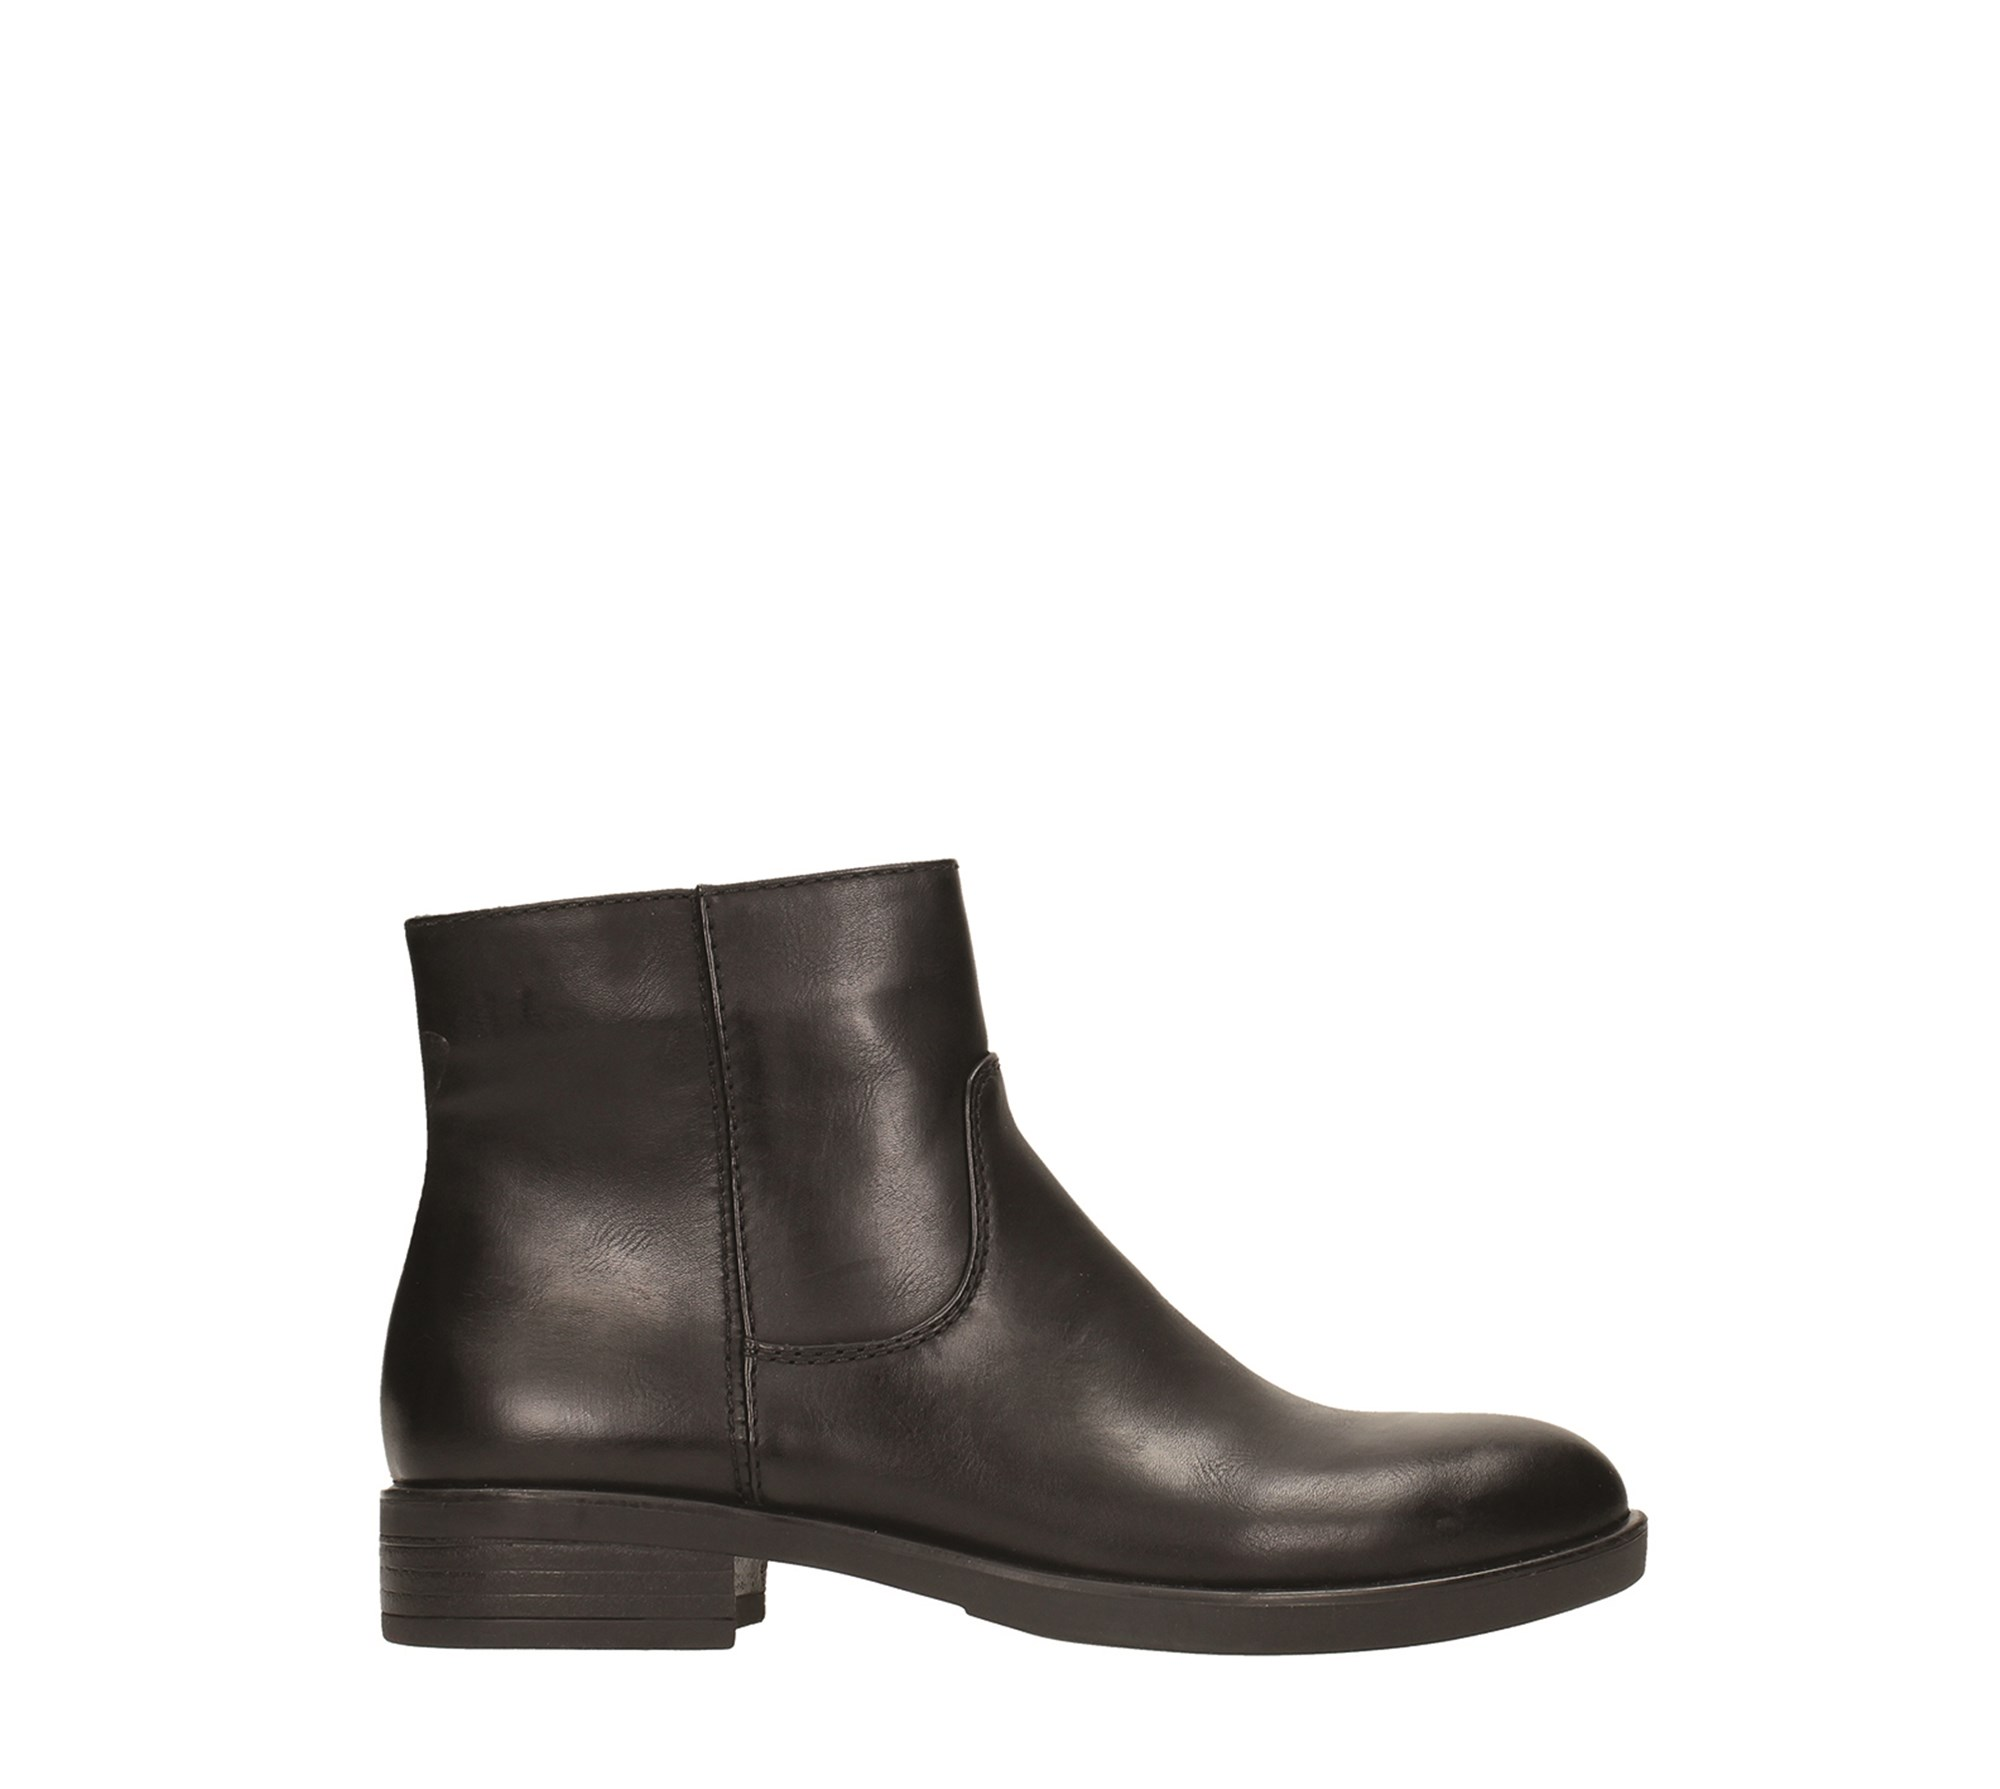 Tata Italia Shoes Woman Stivaletti 1761-01